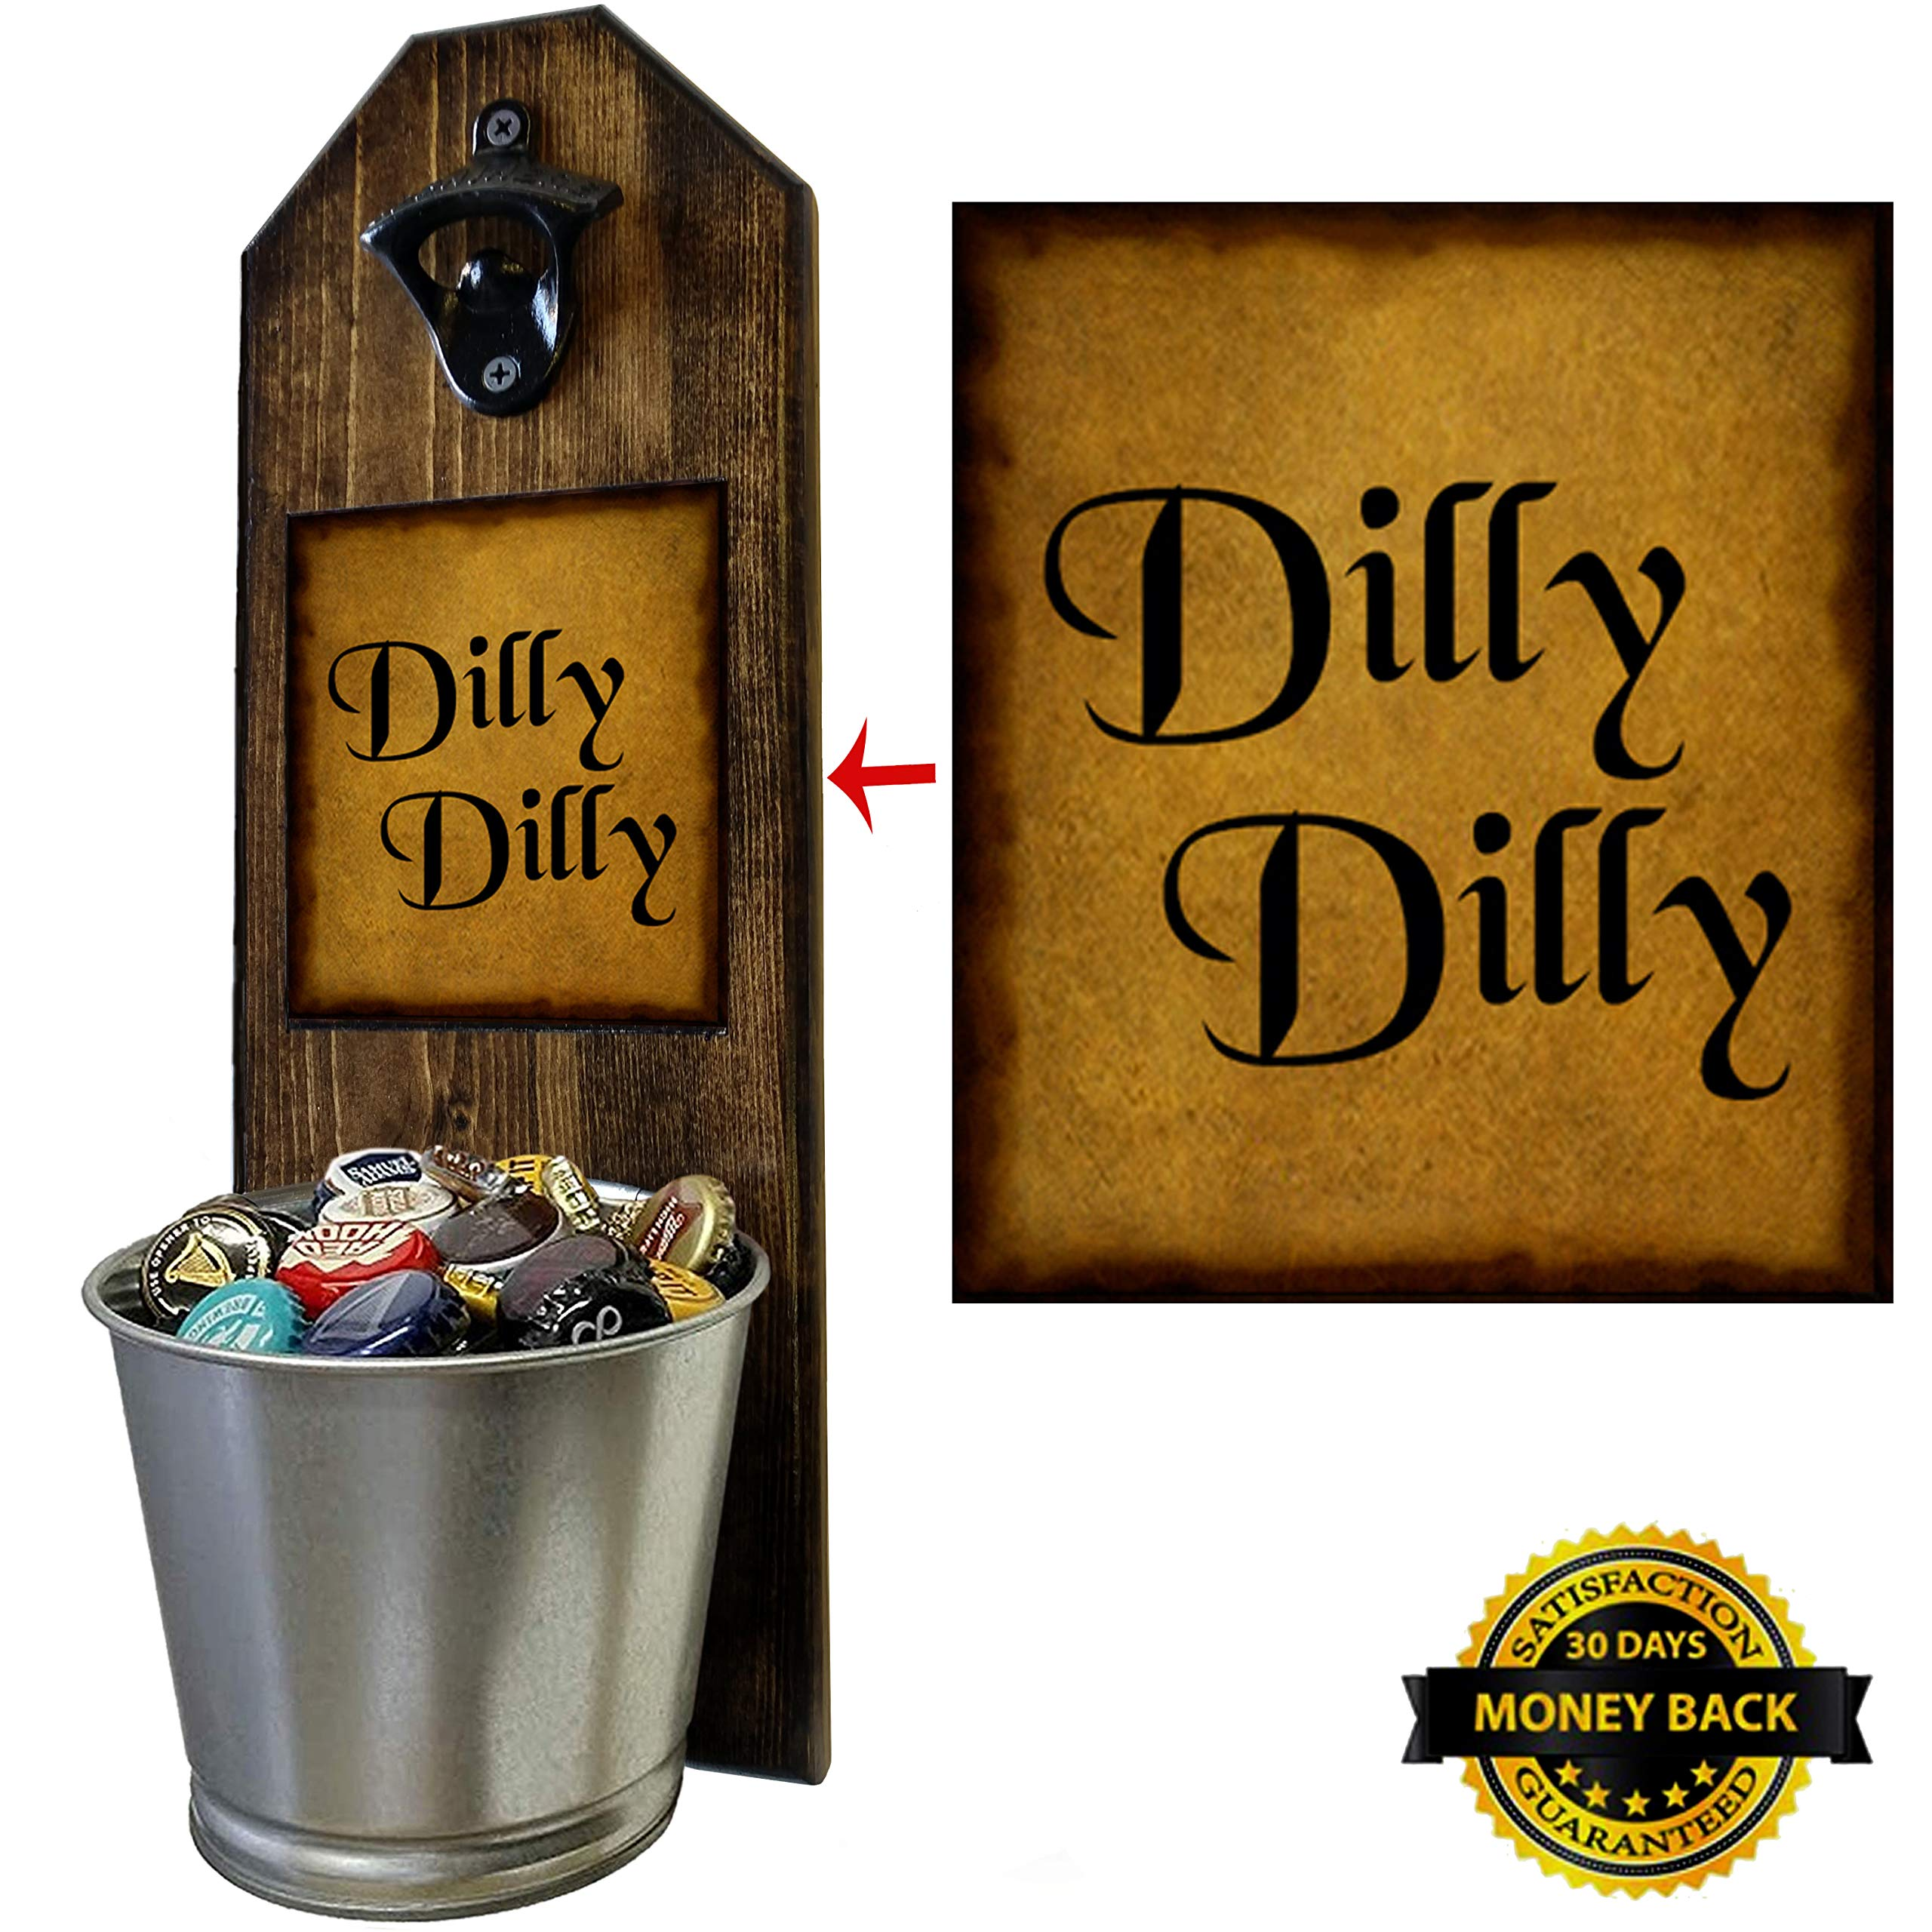 Dilly Dilly Bottle Opener and Cap Catcher. Handcrafted by a Vet. Made of solid pine, rustic cast iron bottle opener and sturdy mini galvanized bucket. Great Gift! (for your beer!) by CherryPic Junction